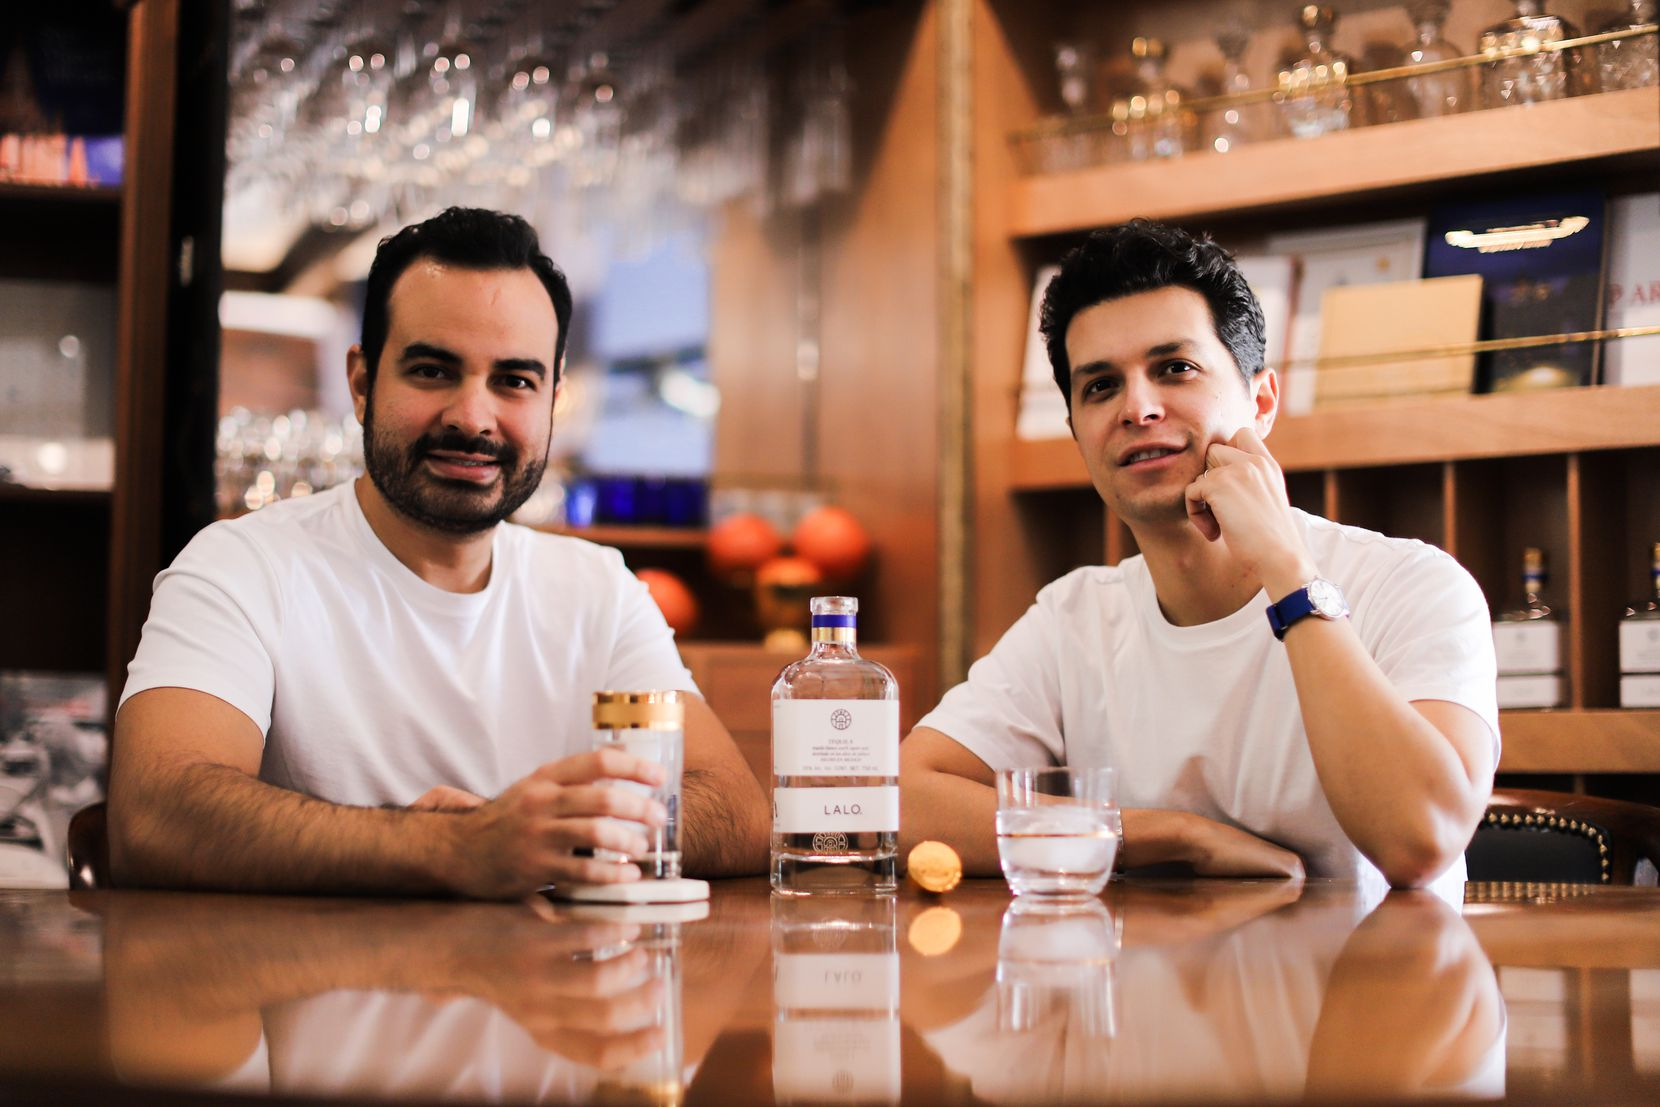 """Eduardo """"Lalo"""" González and David Carballido are childhood friends turned co-founders of LALO Tequila. Both have been in the tequila industry for over a decade."""